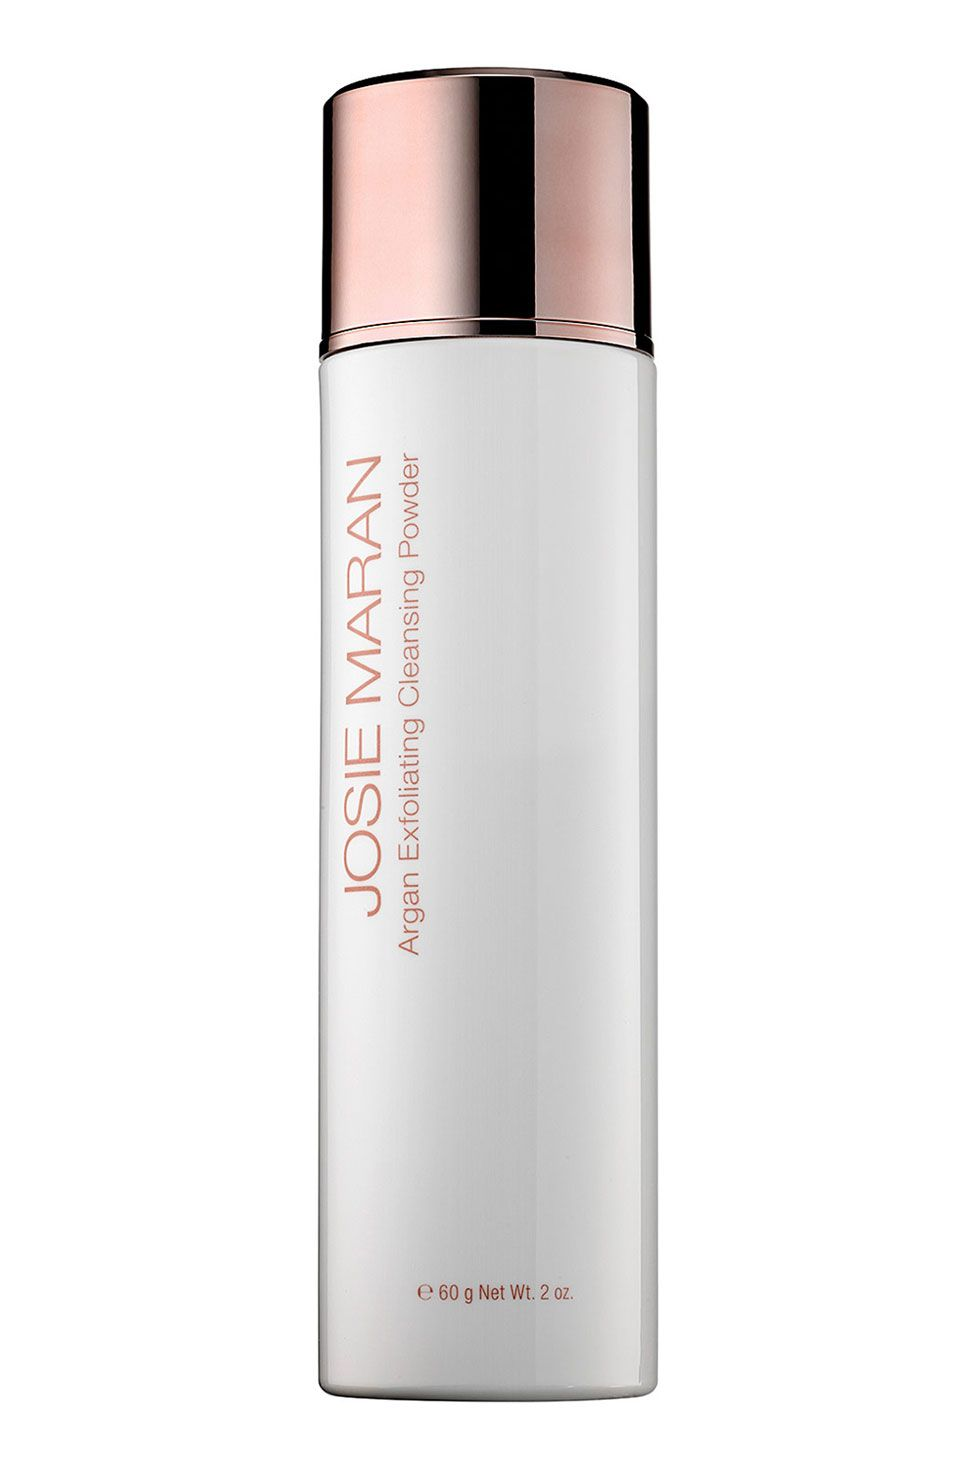 """<p>Josie Maran'ssignature argan makes the ultimate exfoliant in this powder scrub that mixes crushed argan shells and rice powder to buff away dry skin. Count on the added tea tree and green tea to help improve your complexionwhether you're using it as a mask, spot treatment, or cleanser.</p><p><strong data-redactor-tag=""""strong"""" data-verified=""""redactor"""">Josie Maran Argan Exfoliating Cleansing Powder, $40; <a href=""""http://www.sephora.com/argan-exfoliating-cleansing-powder-P393070?skuId=1673706&om_mmc=ppc-GG&mkwid=sy6li44Ba&pcrid=102174214959&pdv=c&site=_search&country_switch=&lang=en&gclid=Cj0KEQjw9b6-BRCq7YP34tvW_uUBEiQAkK3svce4Xo3AFnjhDlt78p4DGyEDSbdlCi1qlhr4FFcle3caAqUH8P8HAQ"""" target=""""_blank"""">sephora.com</a>.</strong></p>"""